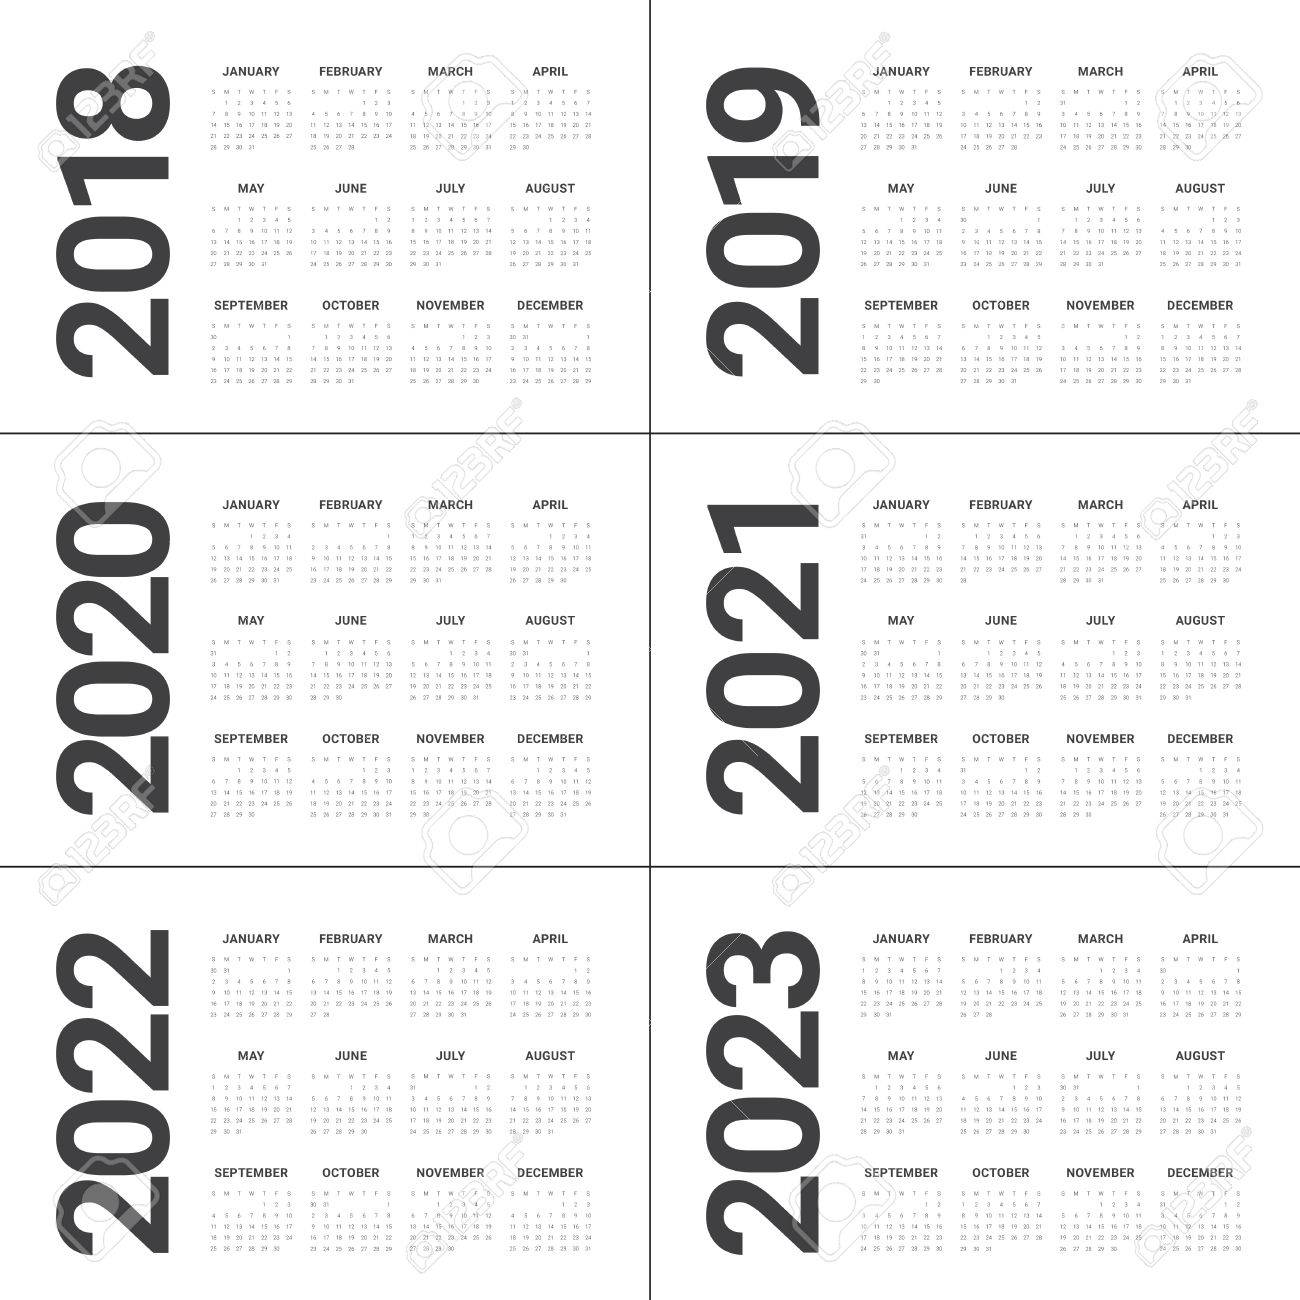 Calendario 2020 Vector Gratis.Year 2018 2019 2020 2021 2022 2023 Calendar Vector Design Template